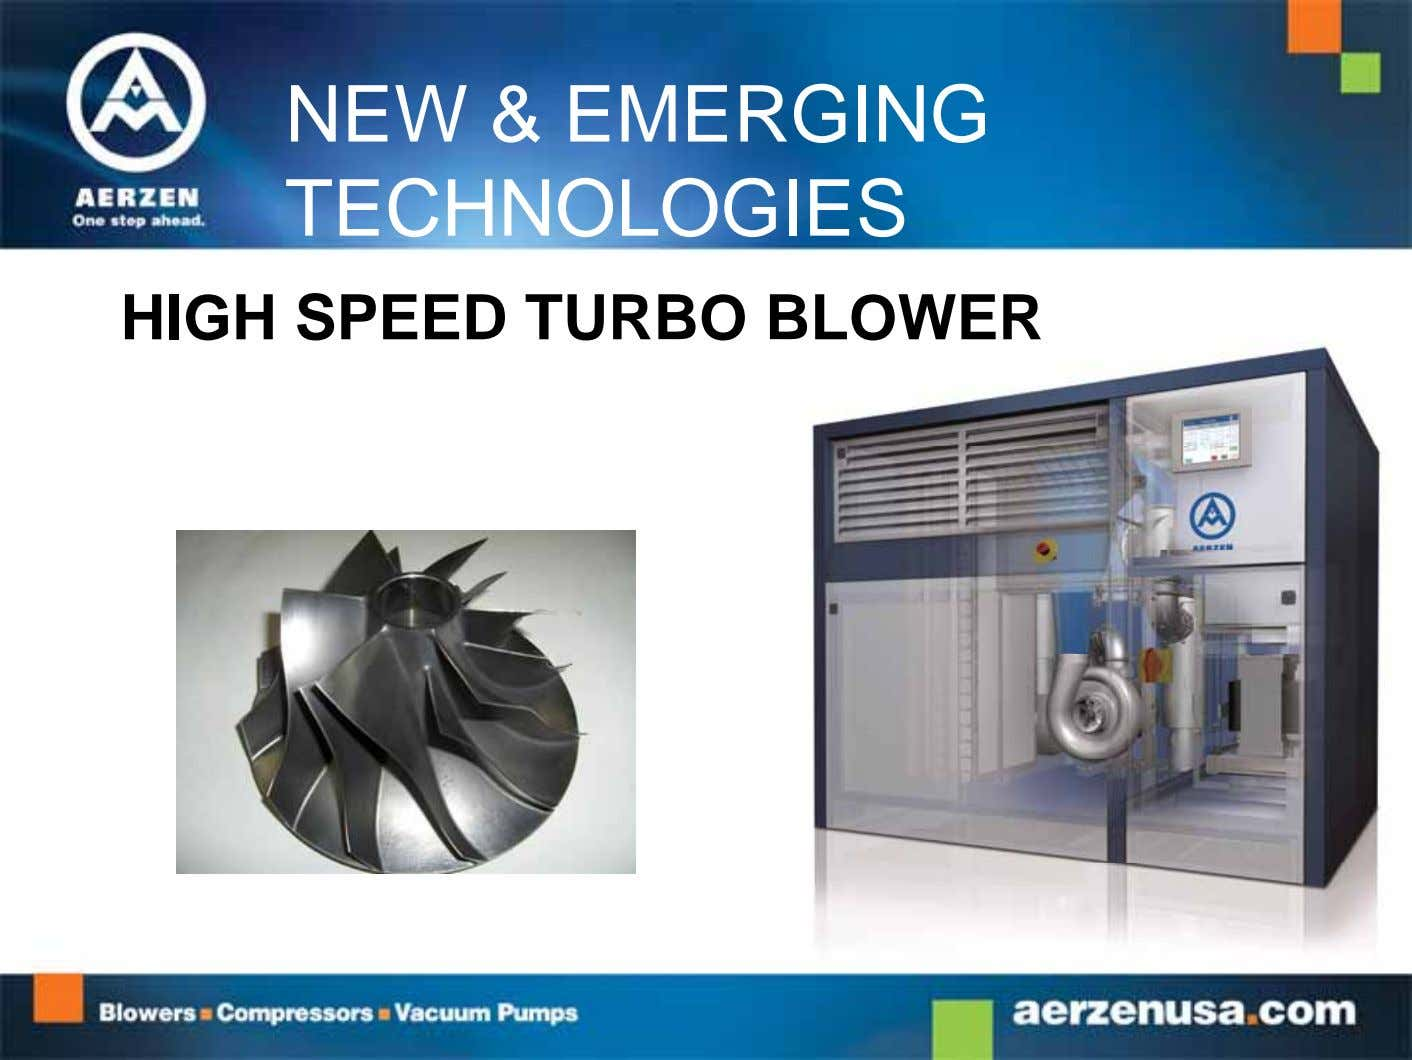 NEW & EMERGING TECHNOLOGIES HIGH SPEED TURBO BLOWER